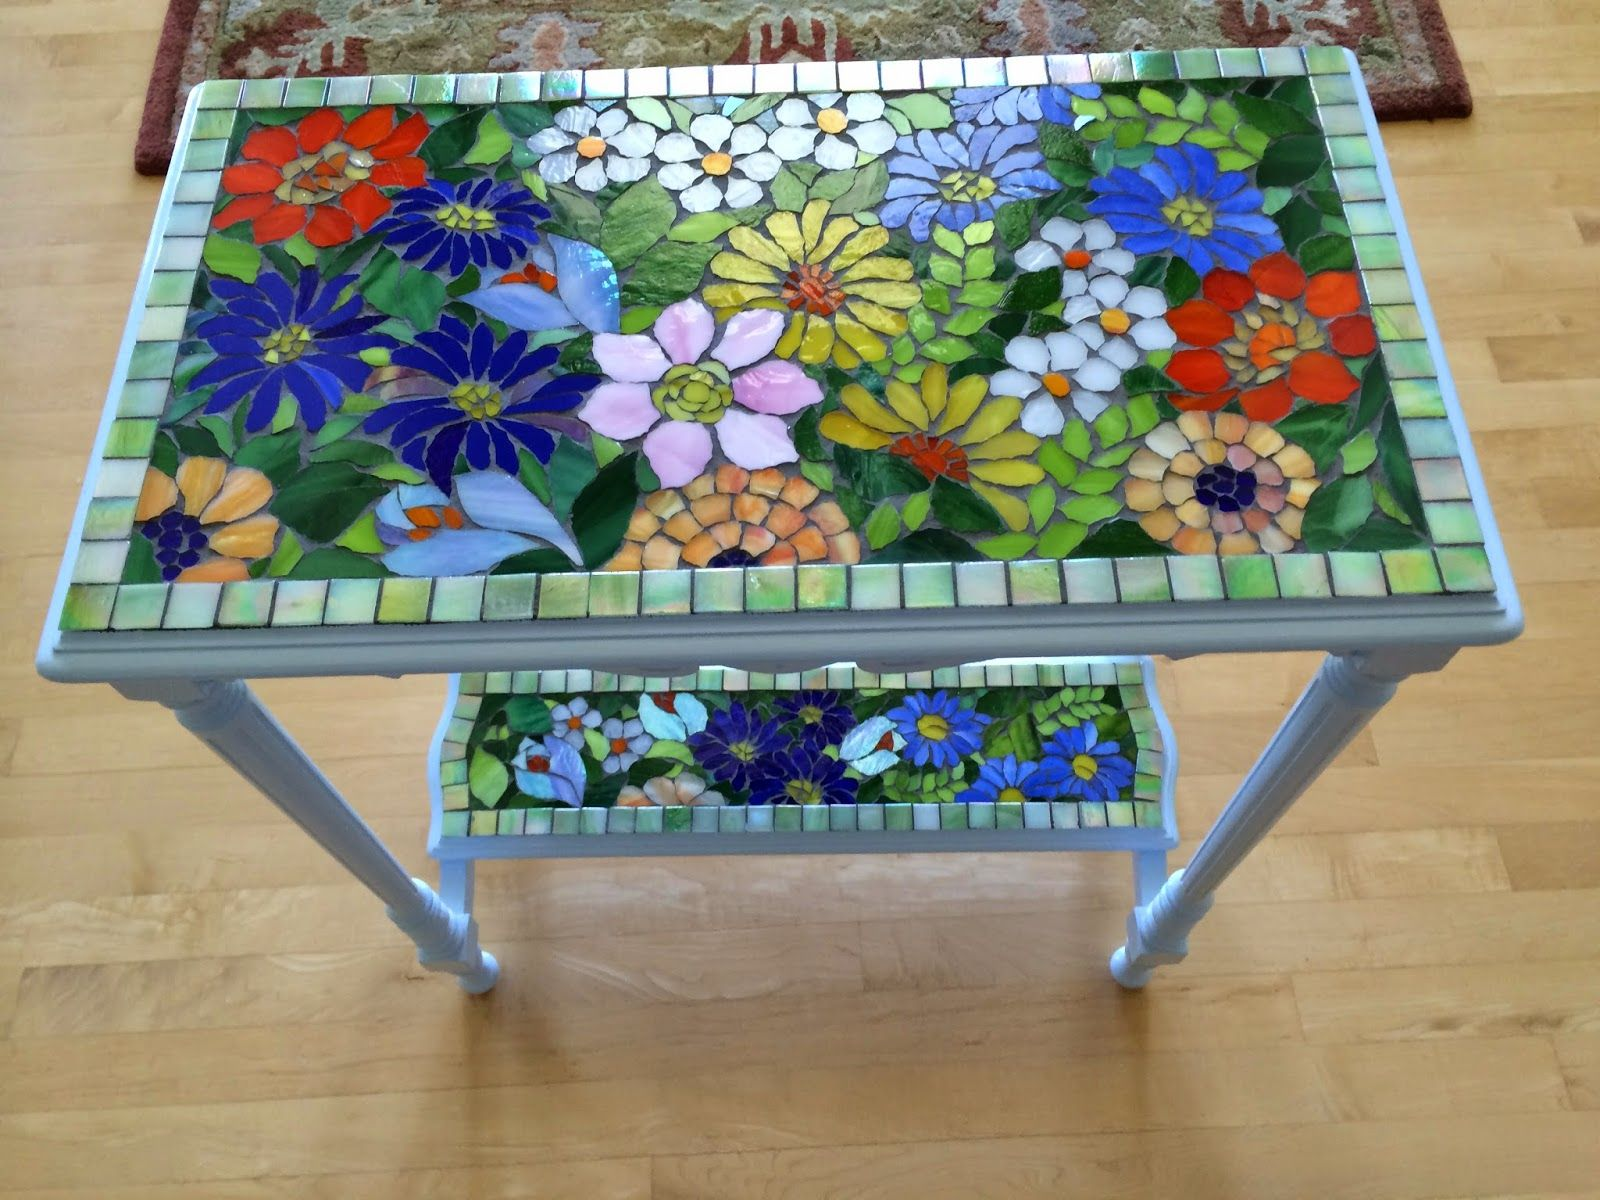 319 best Mosaic Tables & Countertops images on Pinterest